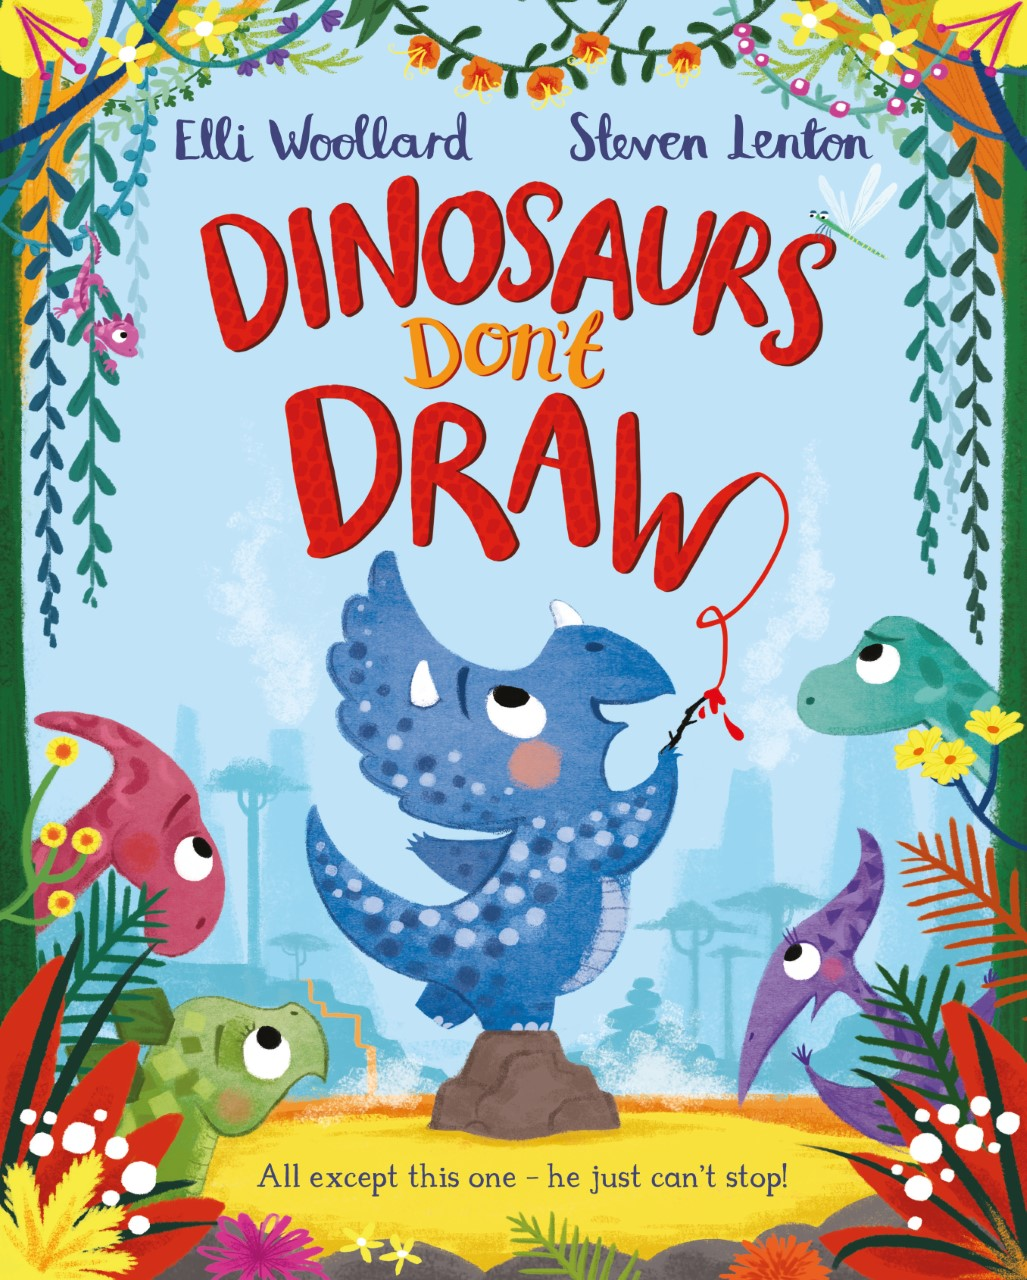 Dinosaurs Don't Draw